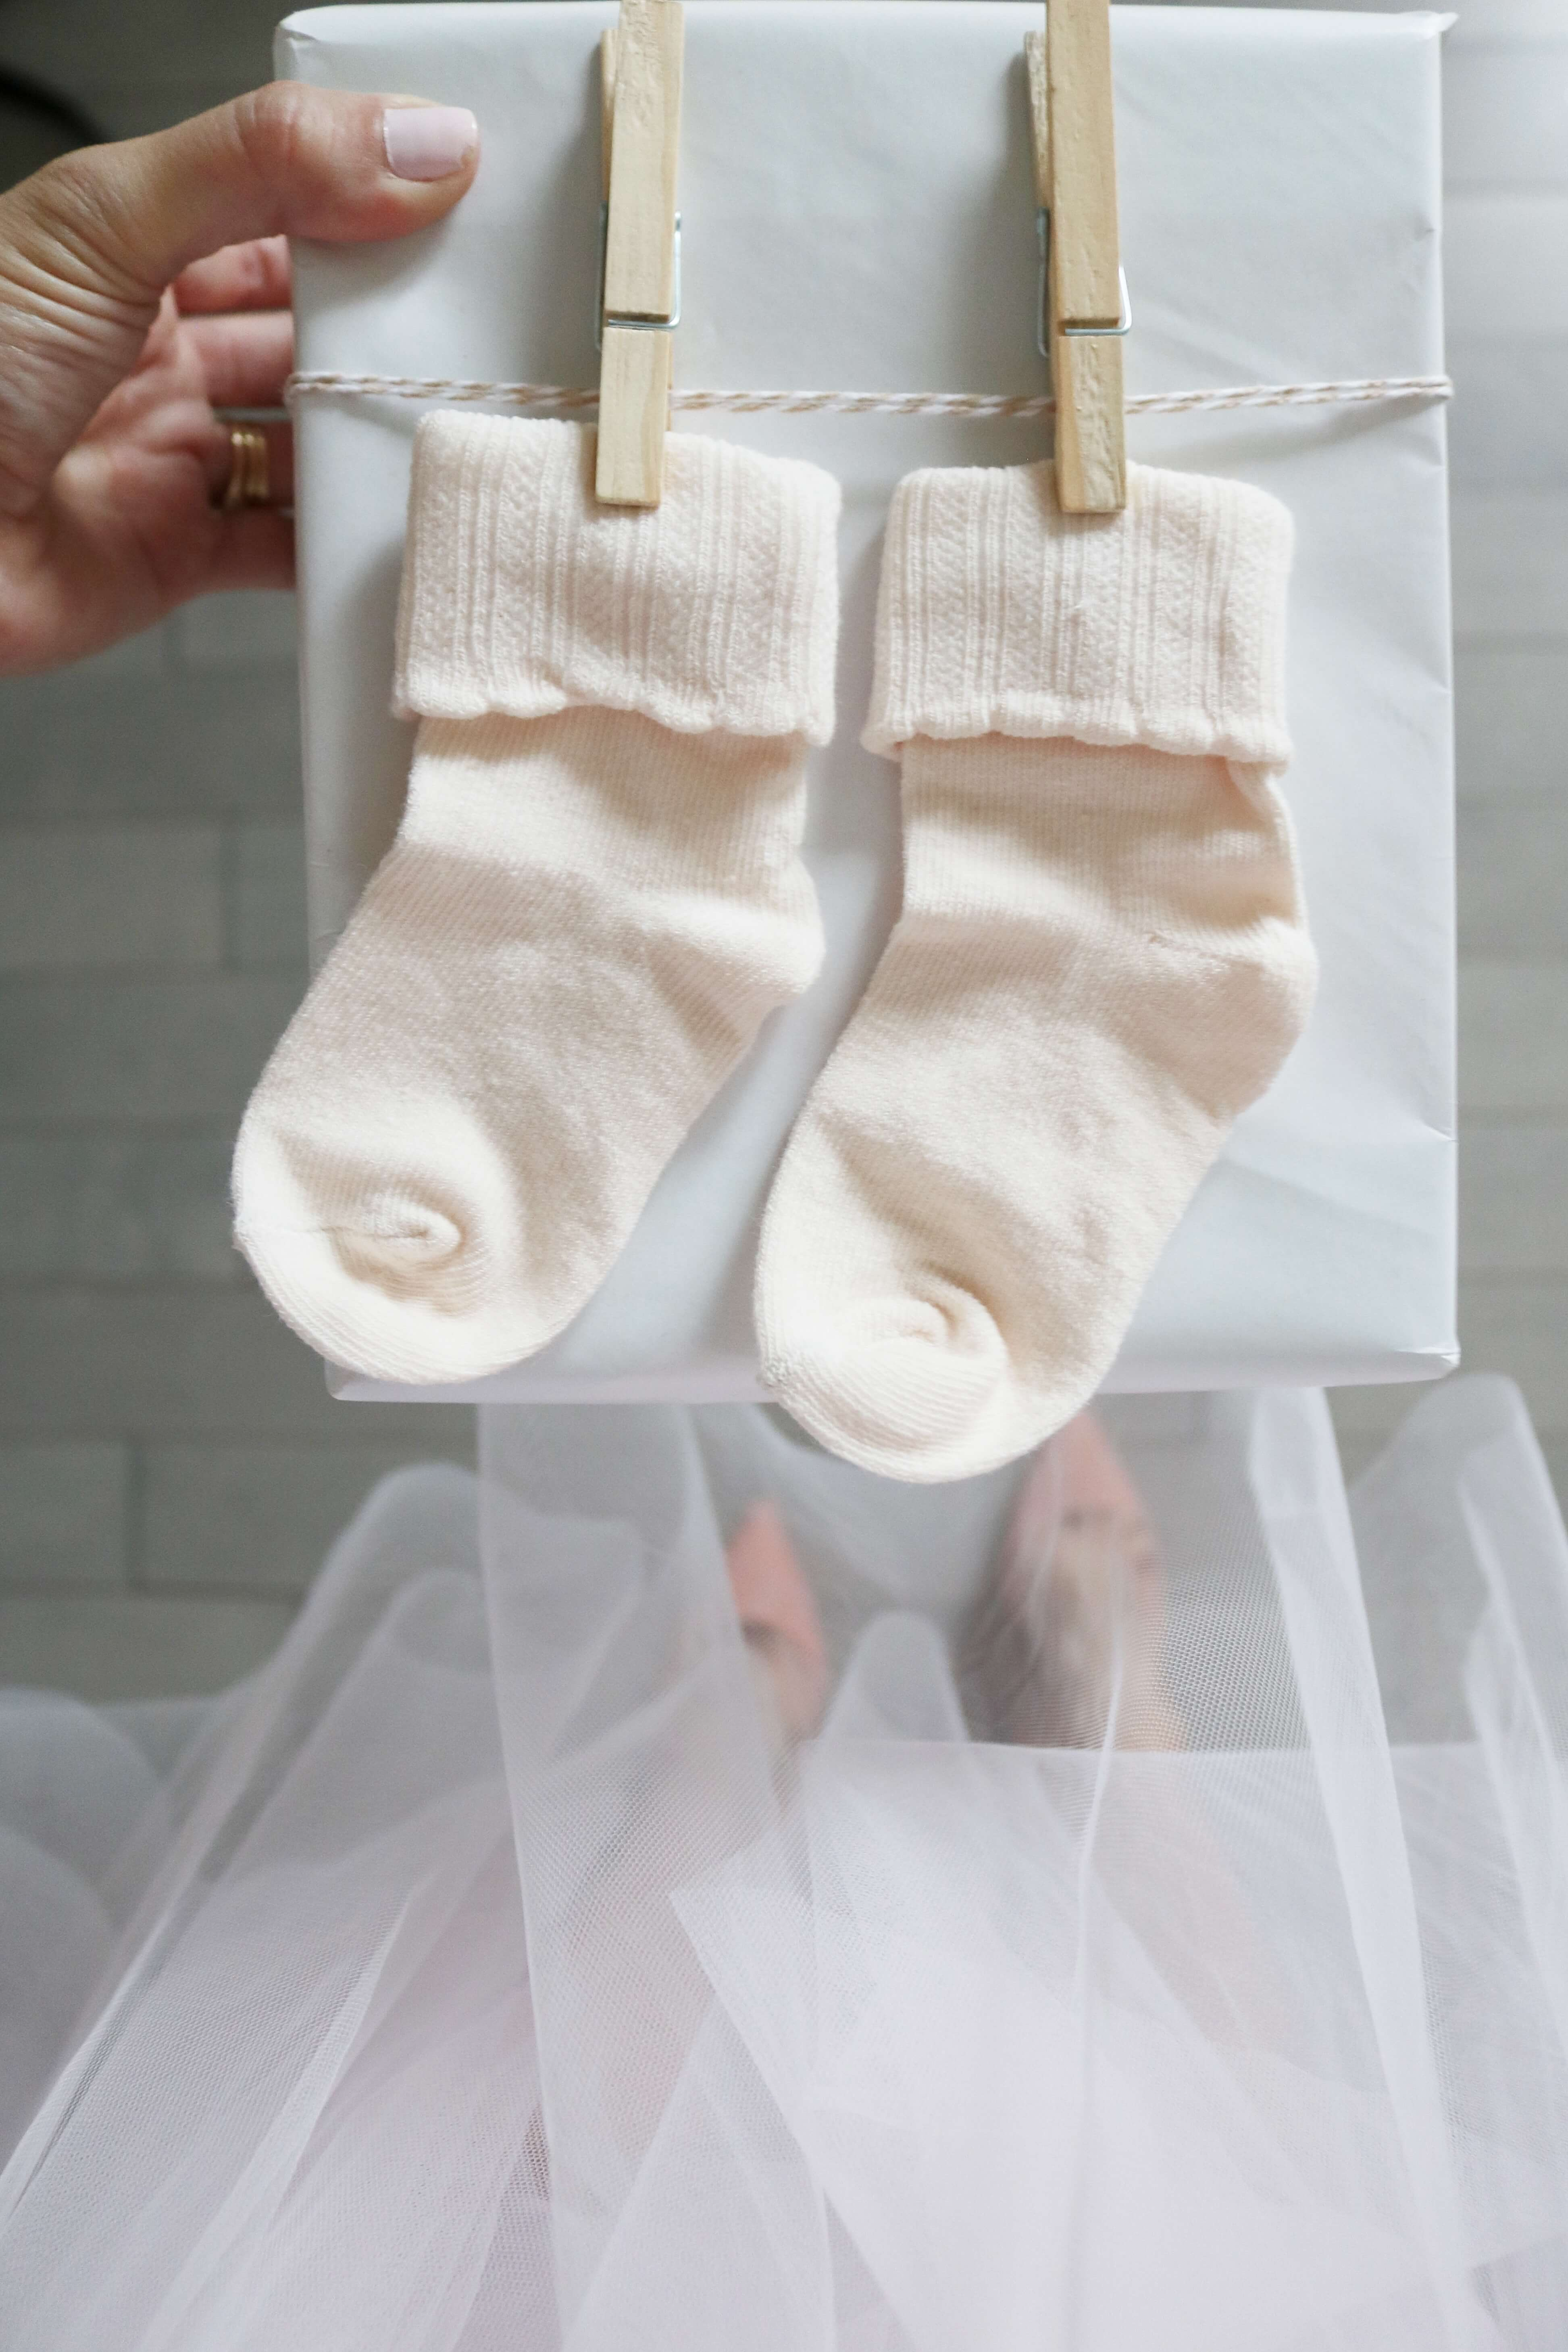 5 Favourite Baby Shower Gifts from buybuyBABY + Fun Gift Wrapping Ideas!  buybuyBABY Whitby